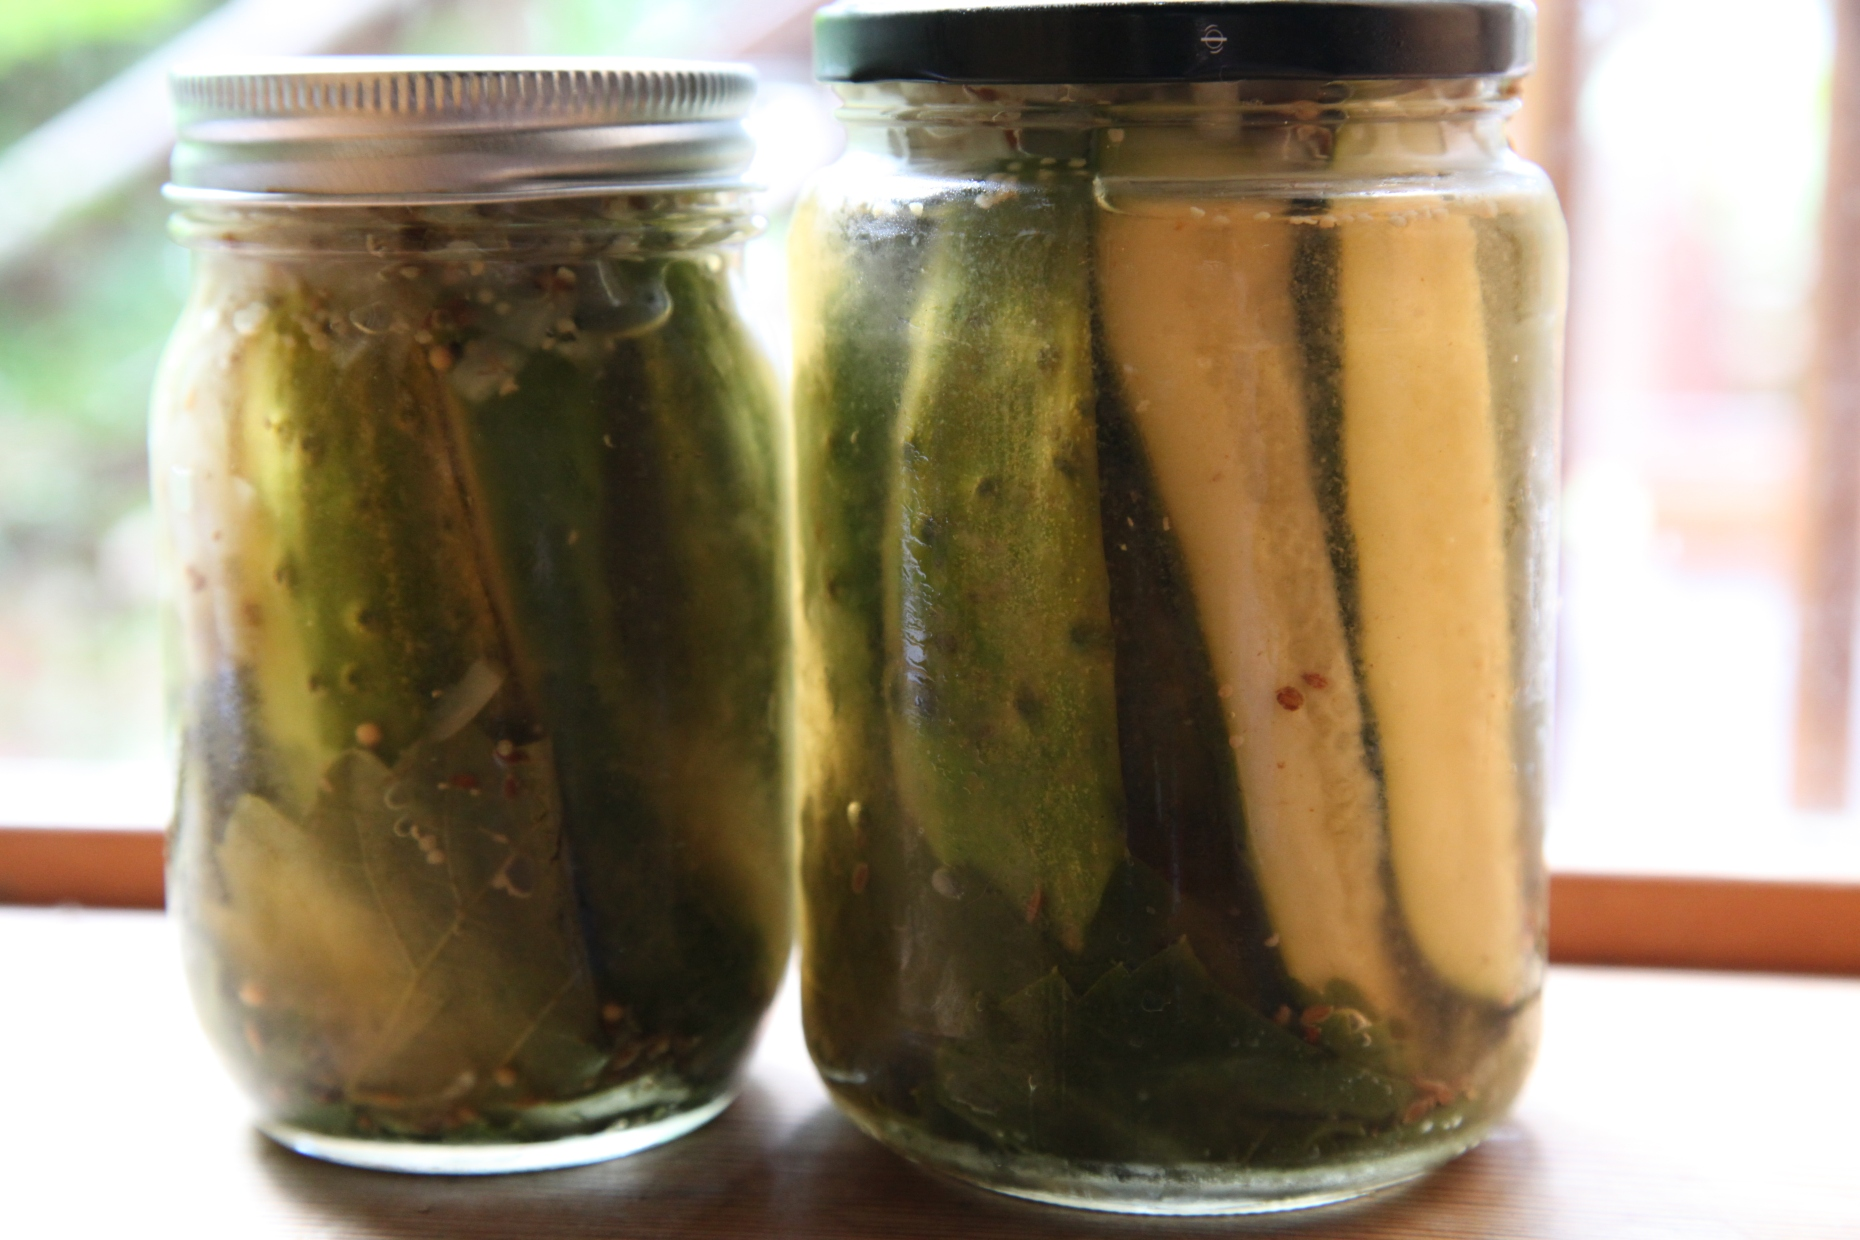 Organic Homemade Refrigerator Pickles. Photo © Liesl Clark